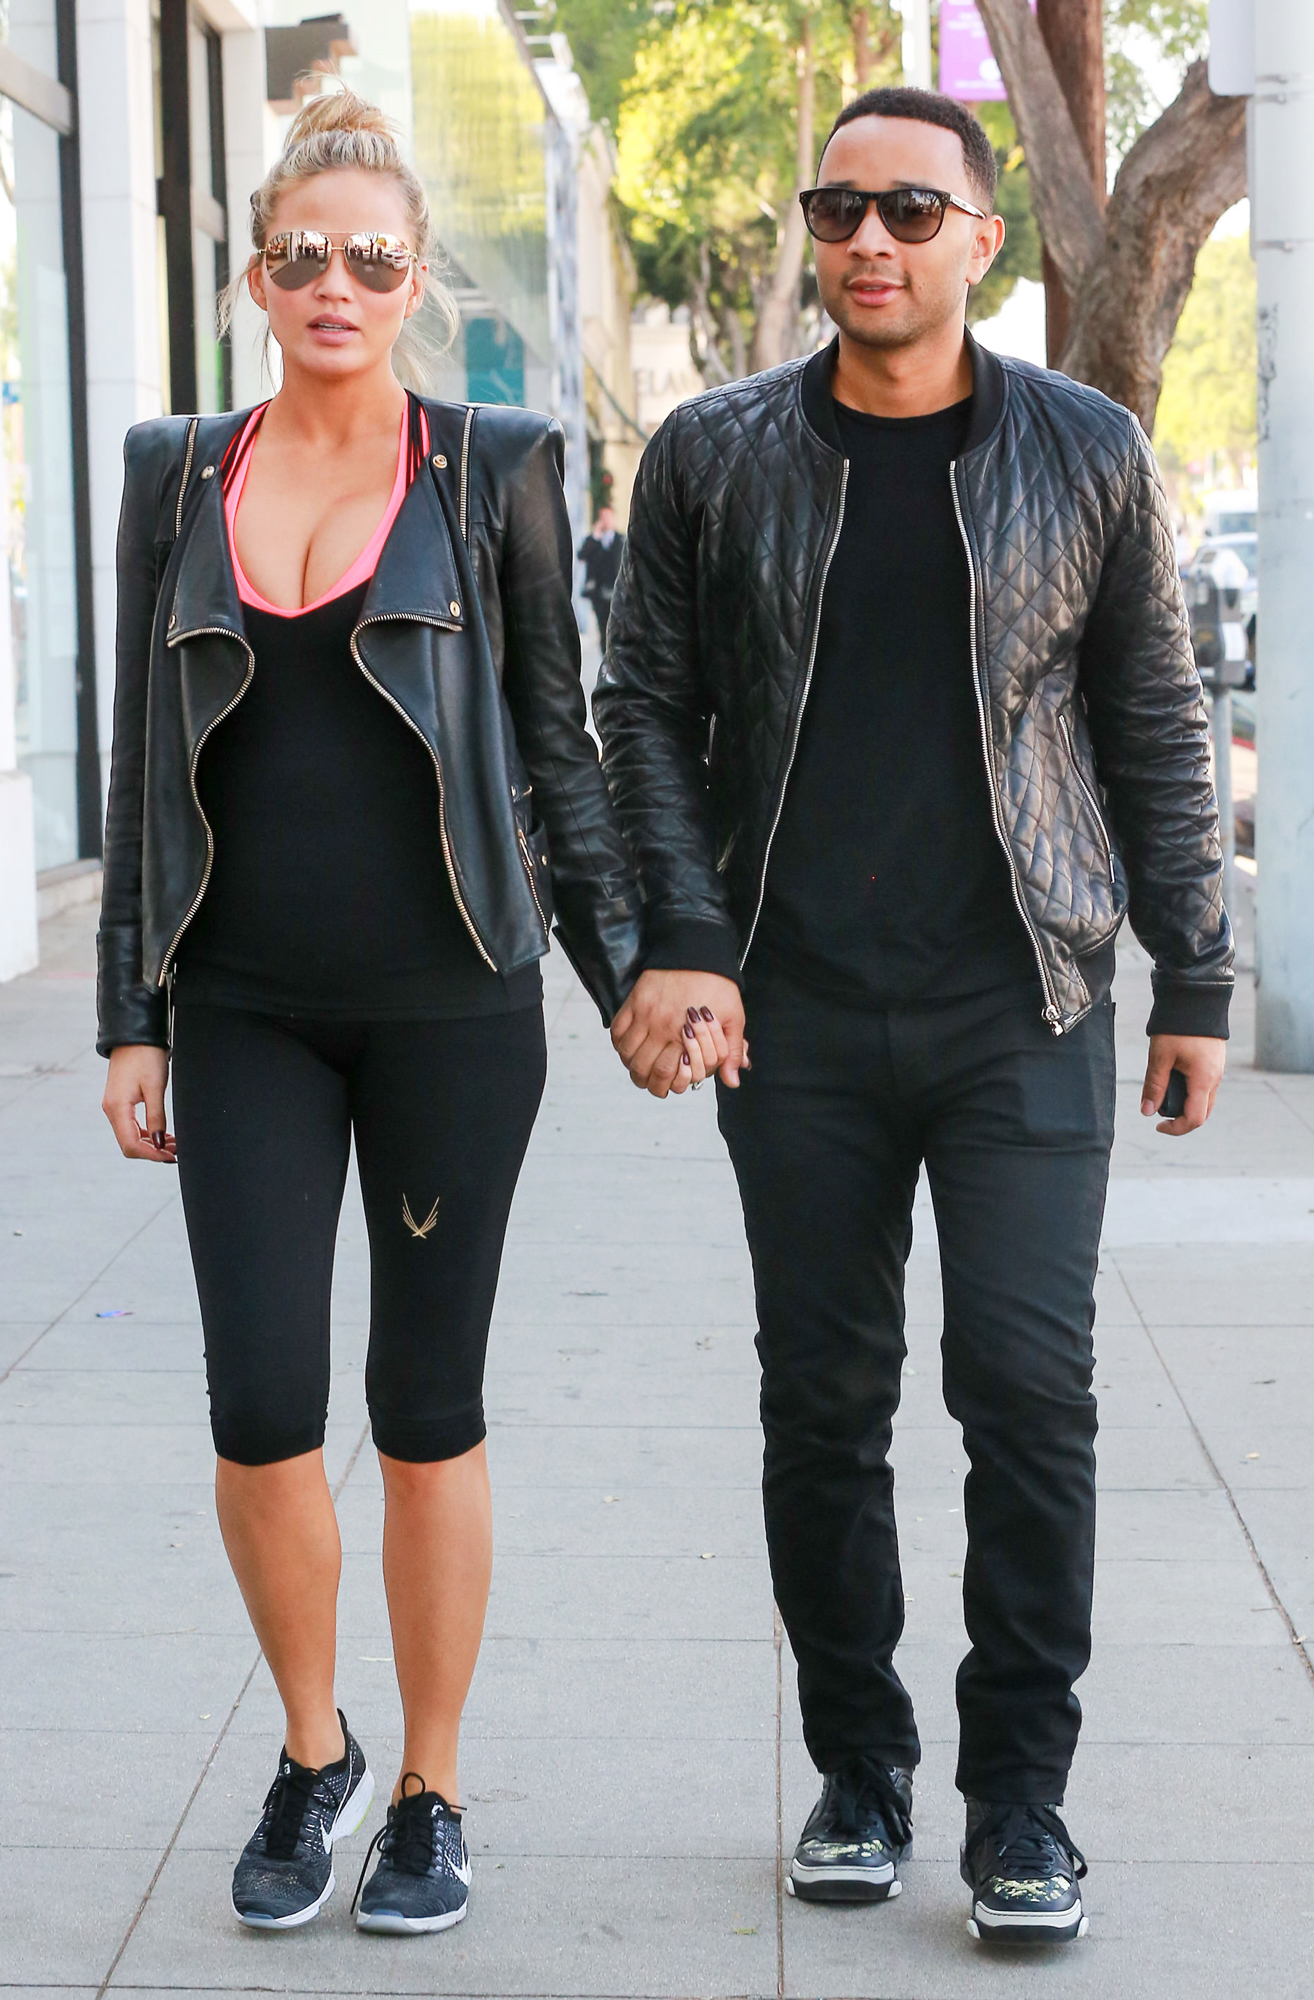 See Chrissy Teigen's Chic Maternity Athleisure Look as She Runs Errands with John Legend